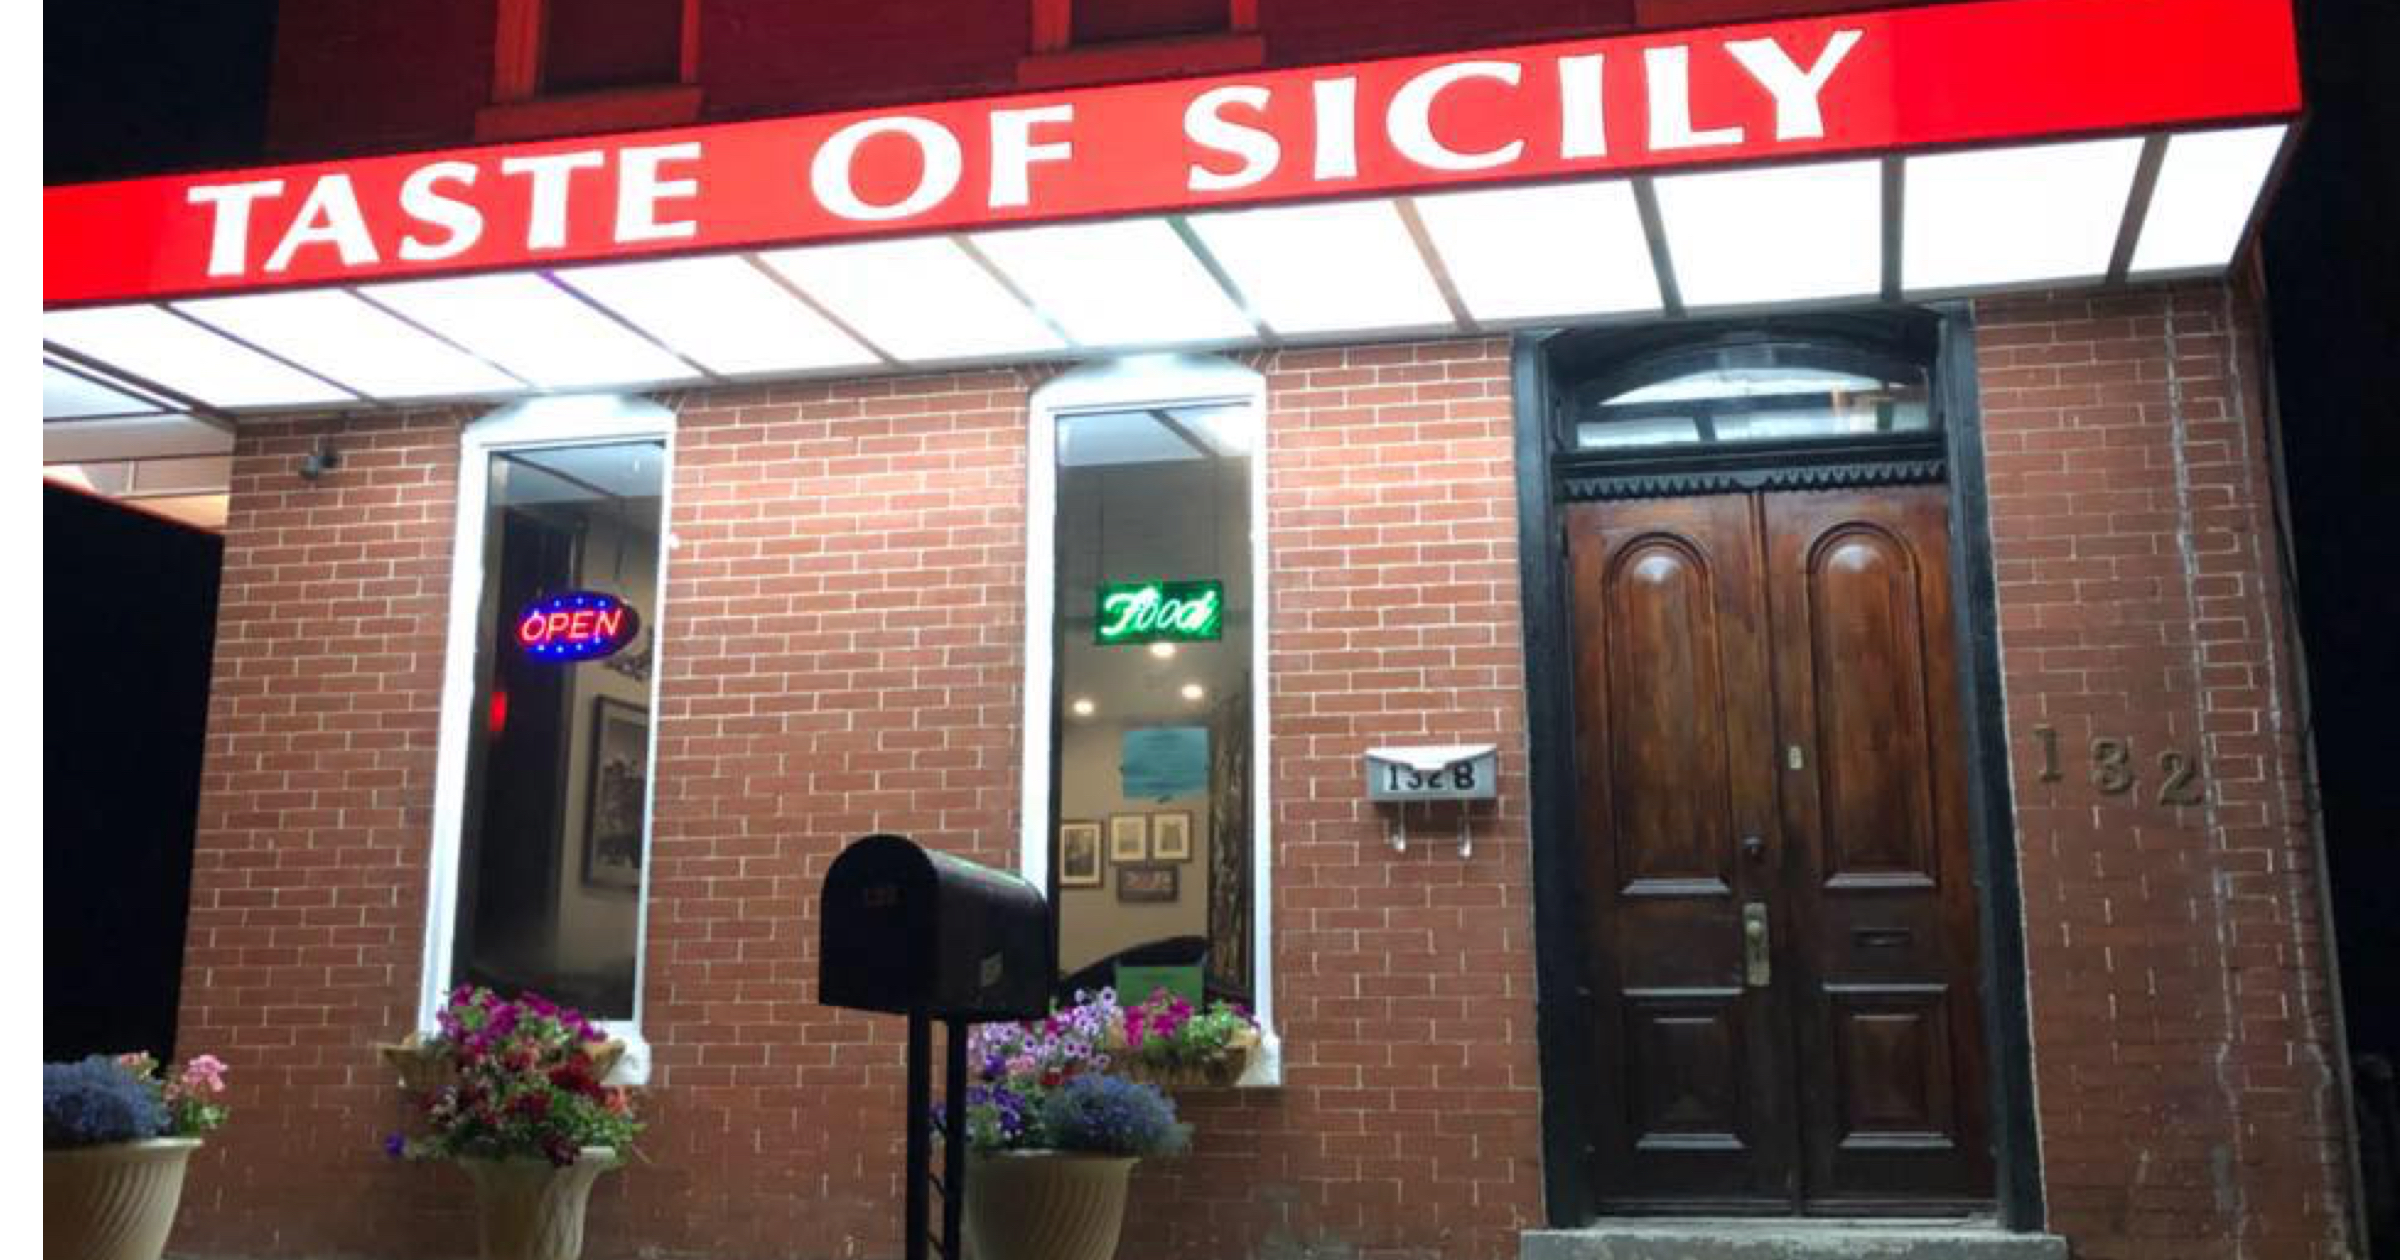 Taste of Sicily receives 'initial notice' from police after resuming eat-in dining